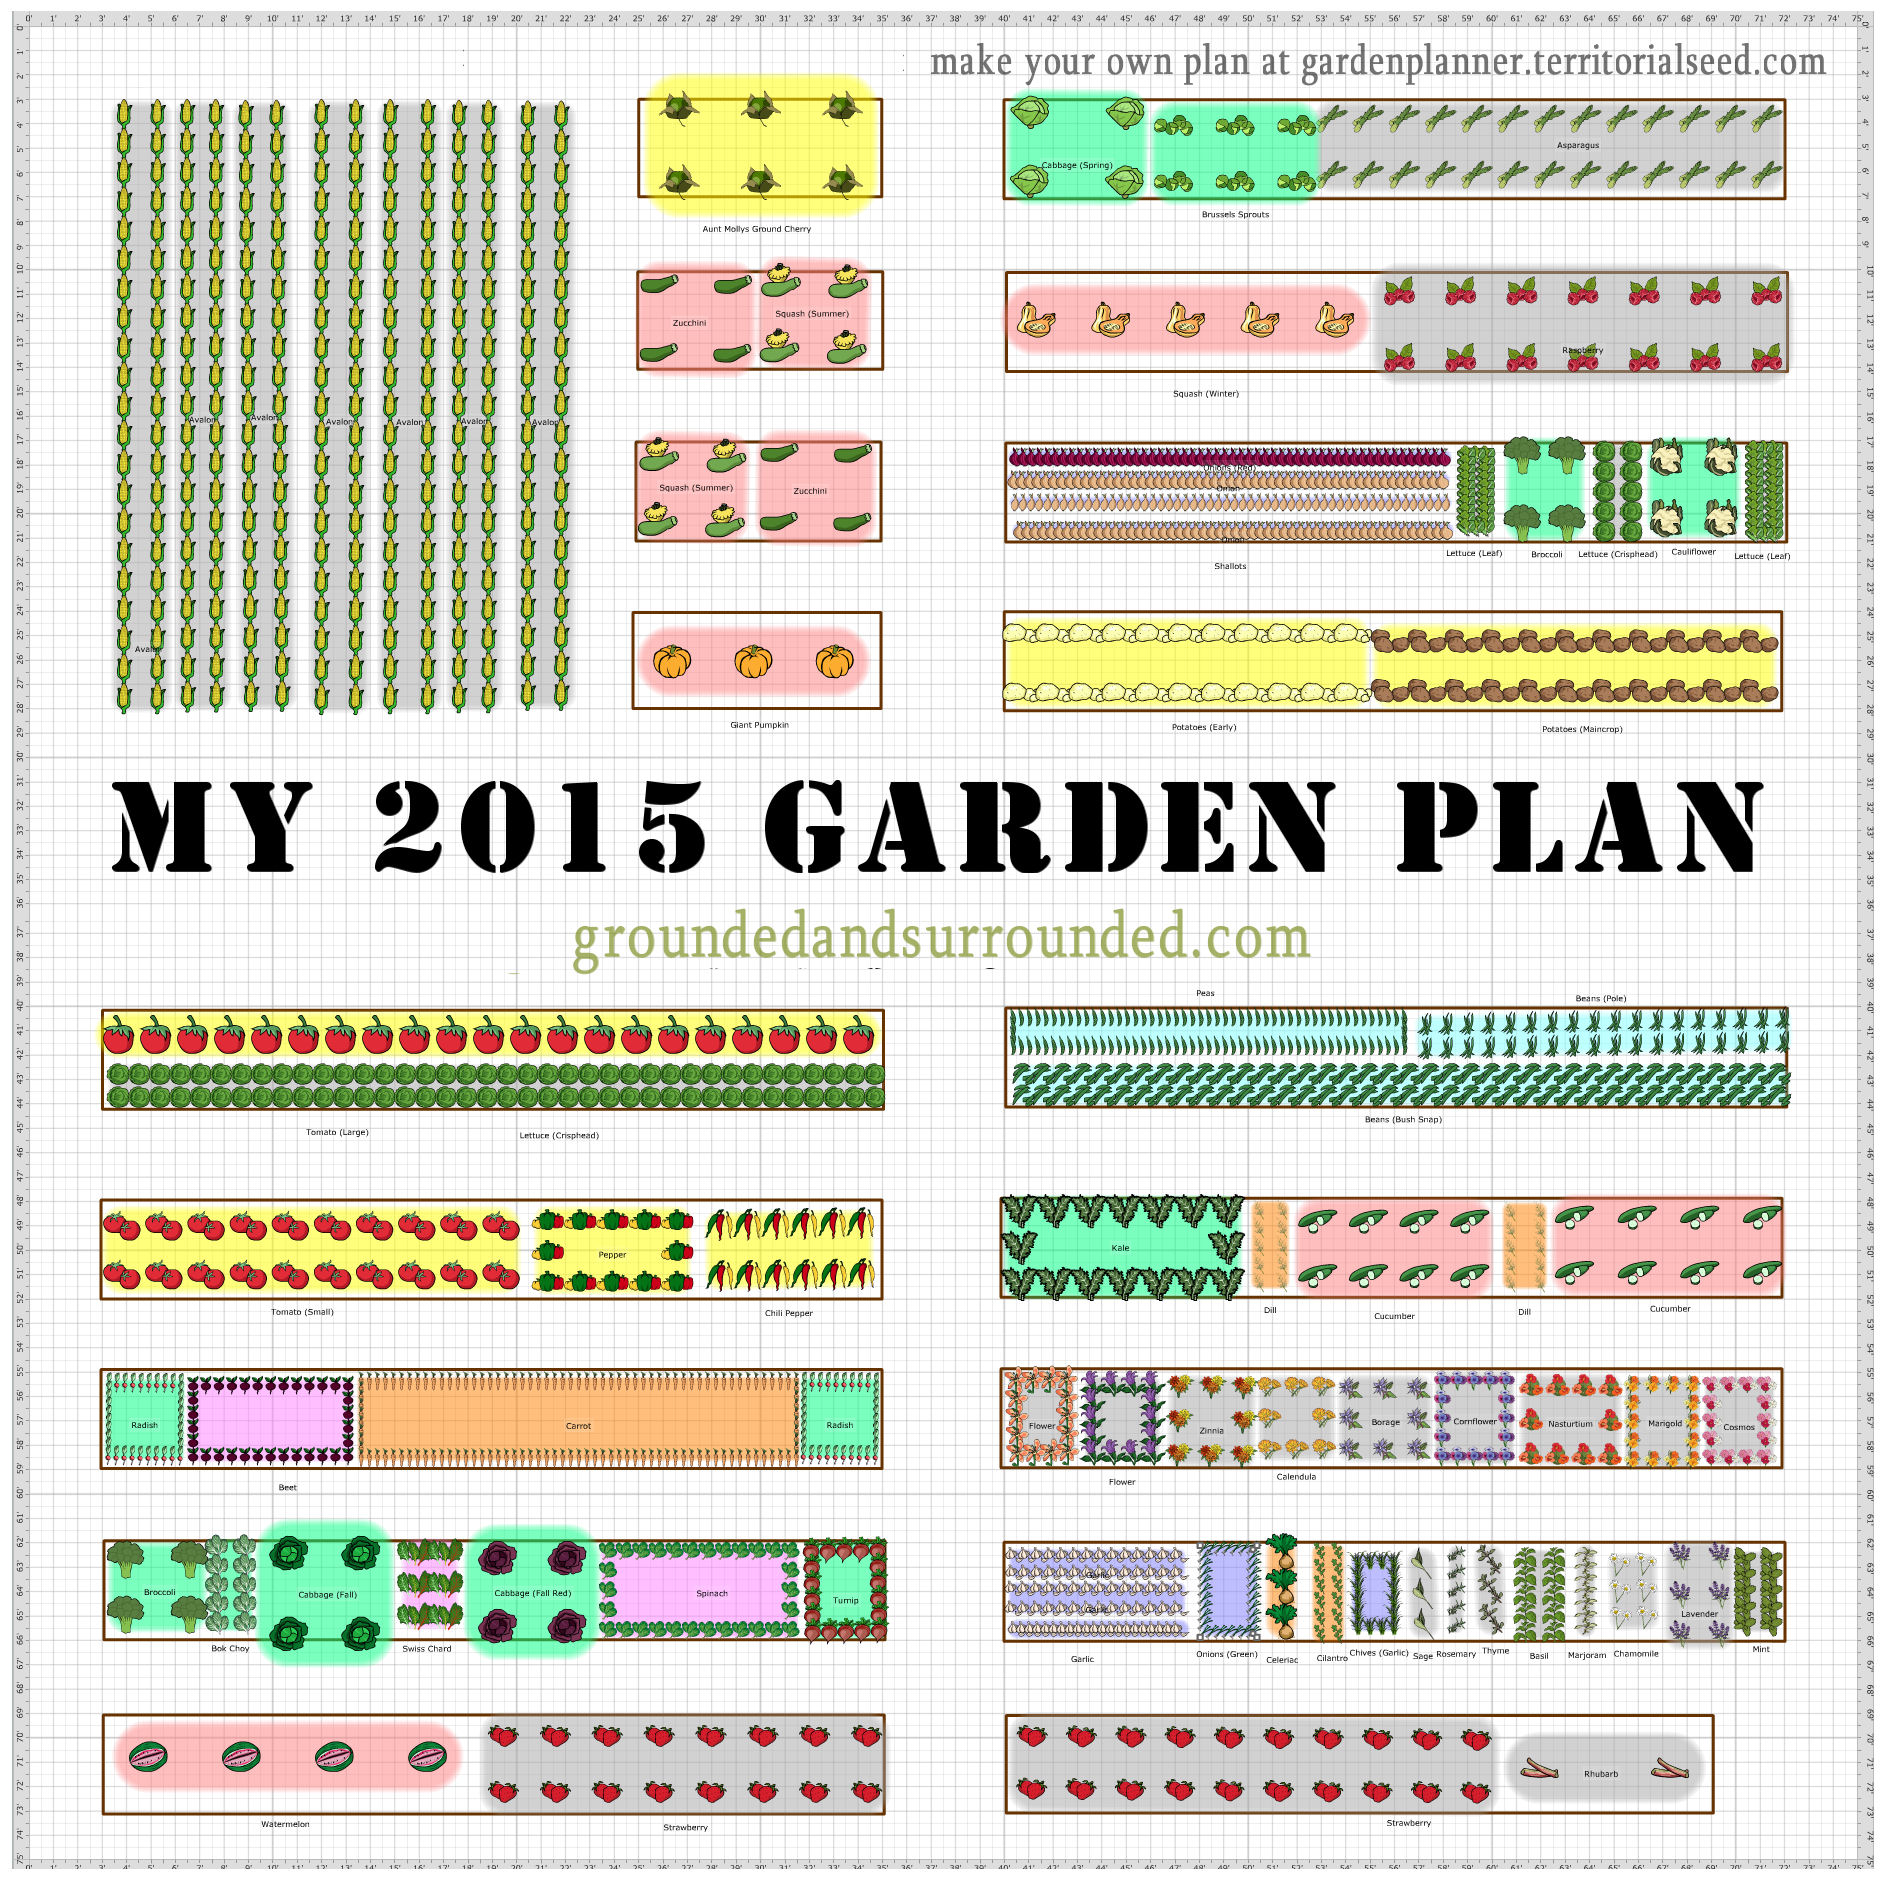 My 5 000 sq ft vegetable garden plan grounded surrounded for Garden layout design